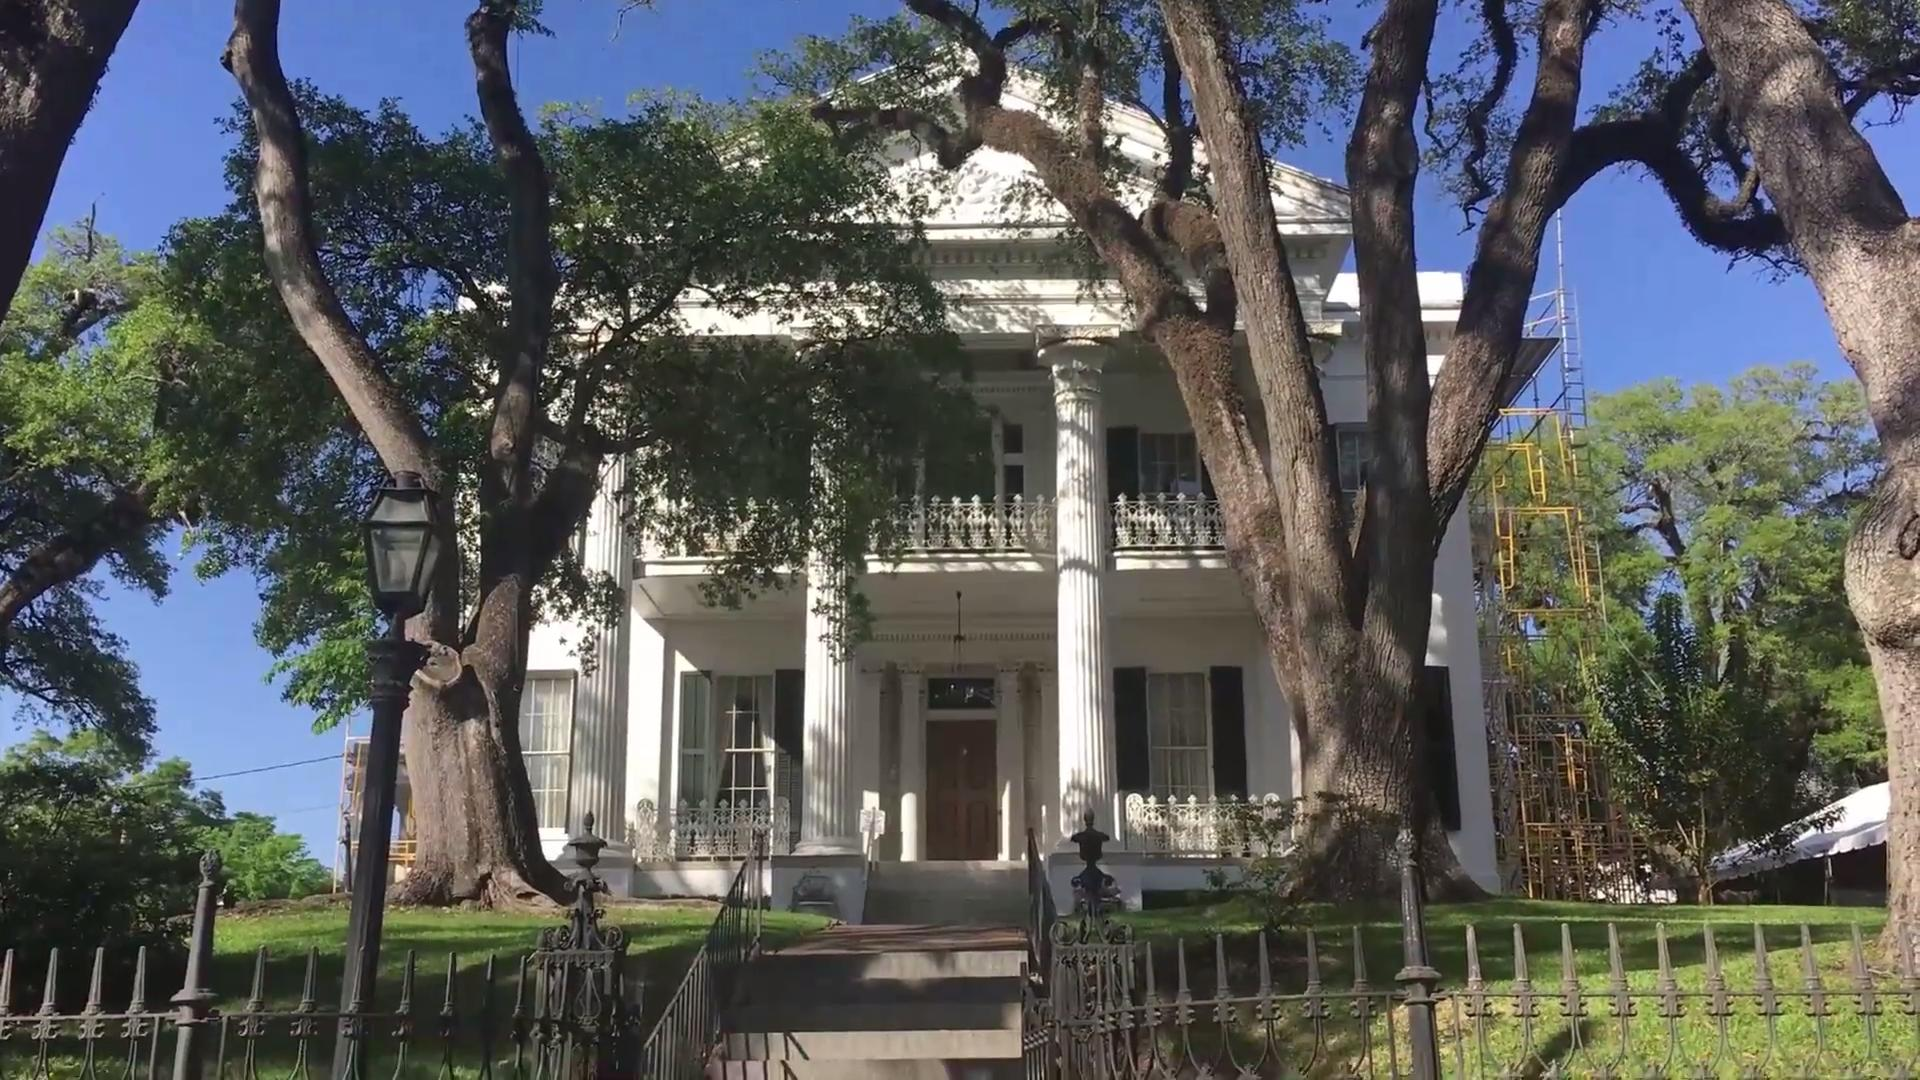 WATCH: 7 Reasons Every Southerner Should Take A Trip To Natchez, Mississippi